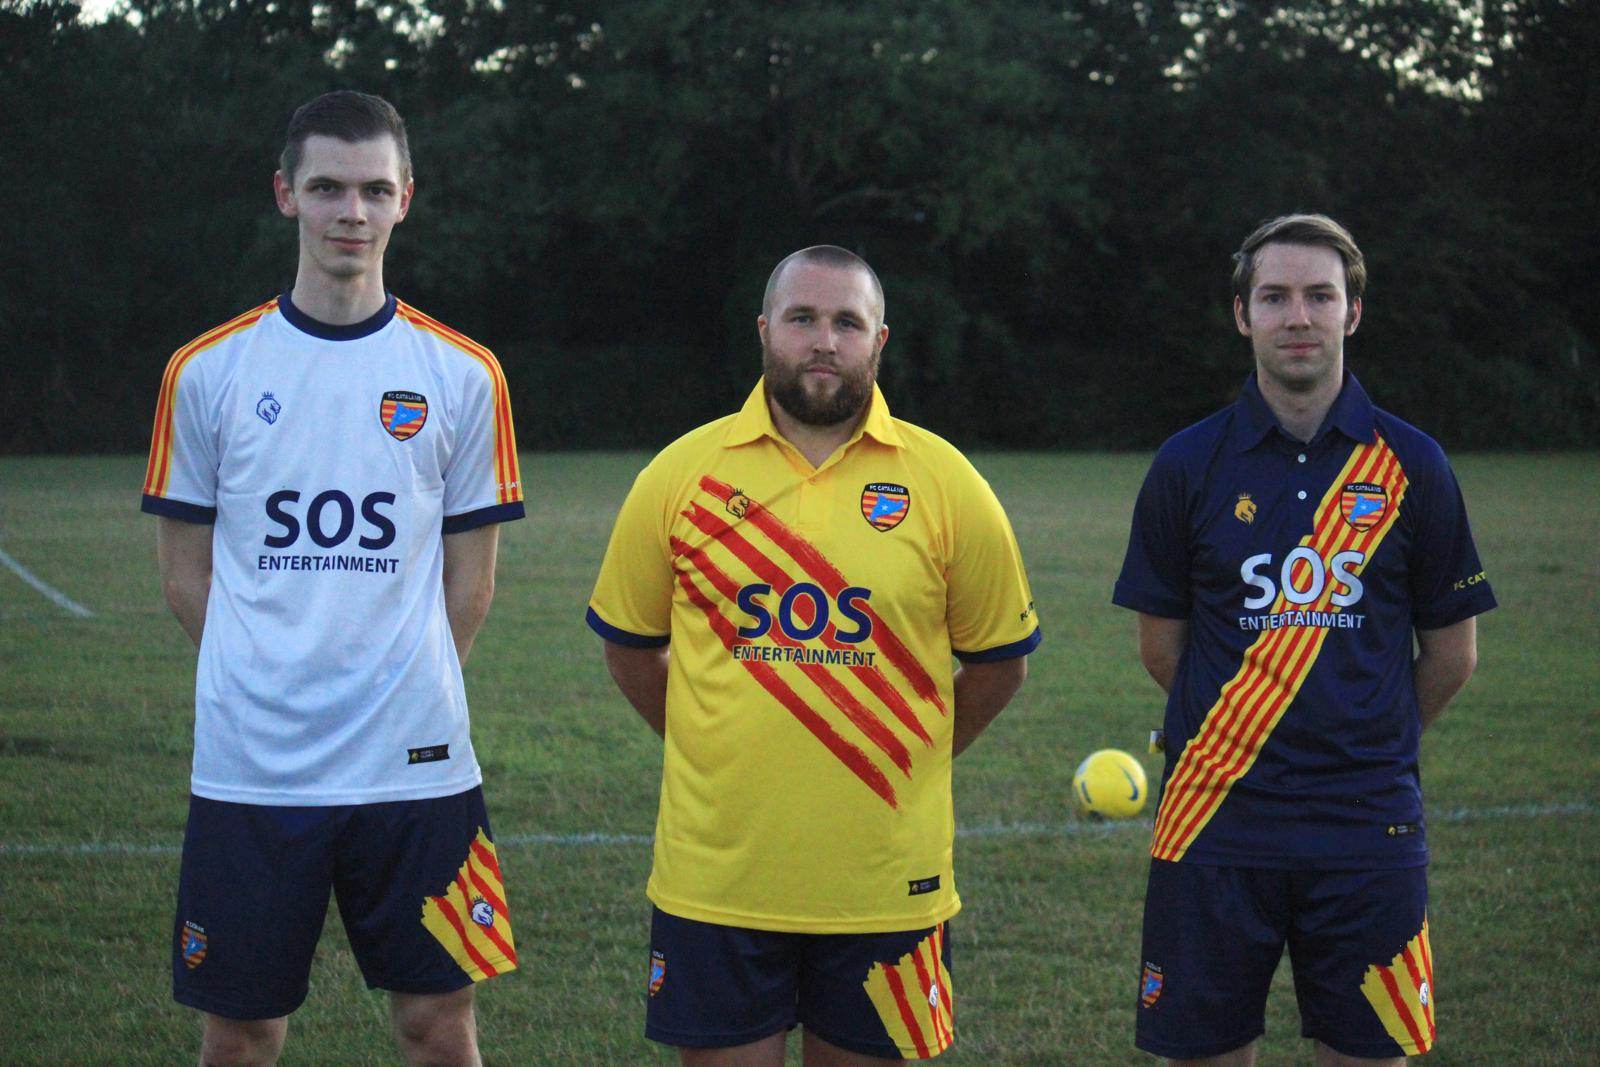 local football team sponsorship, SOS Entertainment